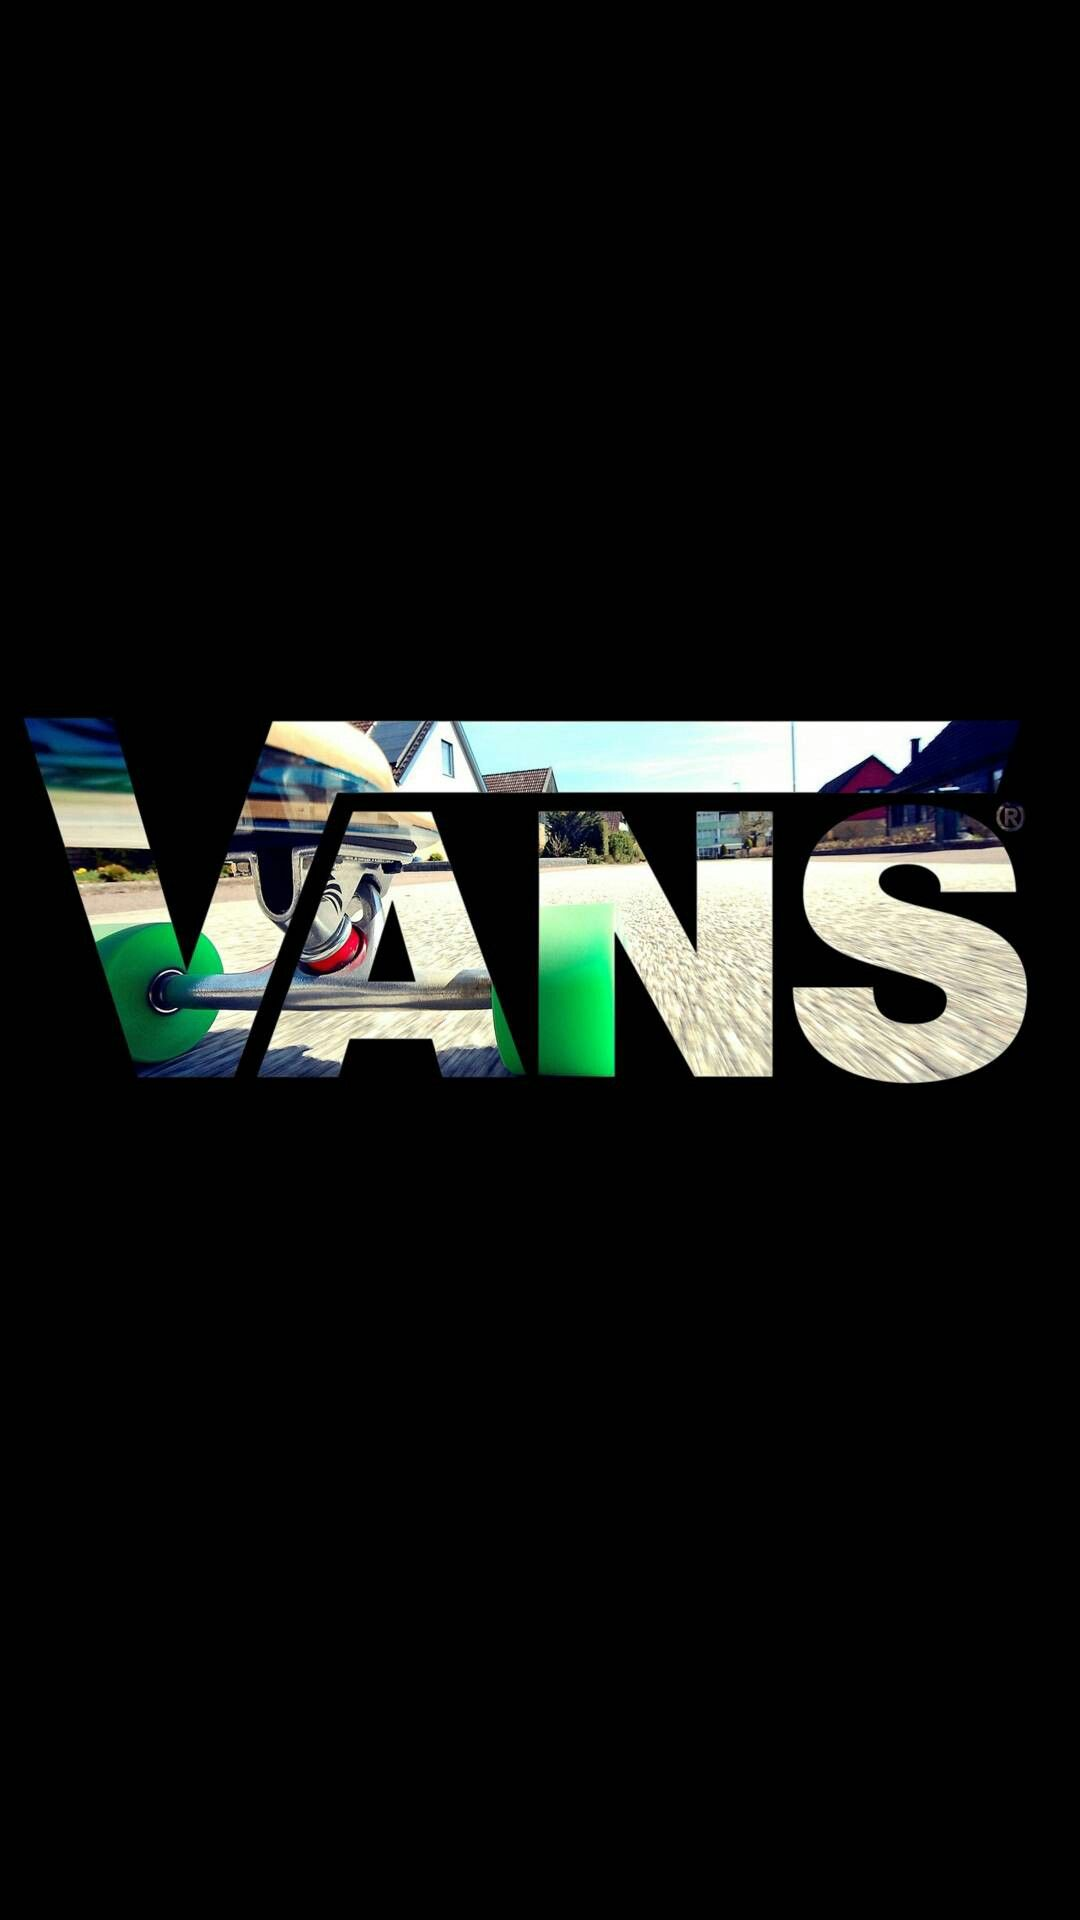 Stories Vans Off The Wall Wallpaper Hd Wans Off The Wall Shoes For